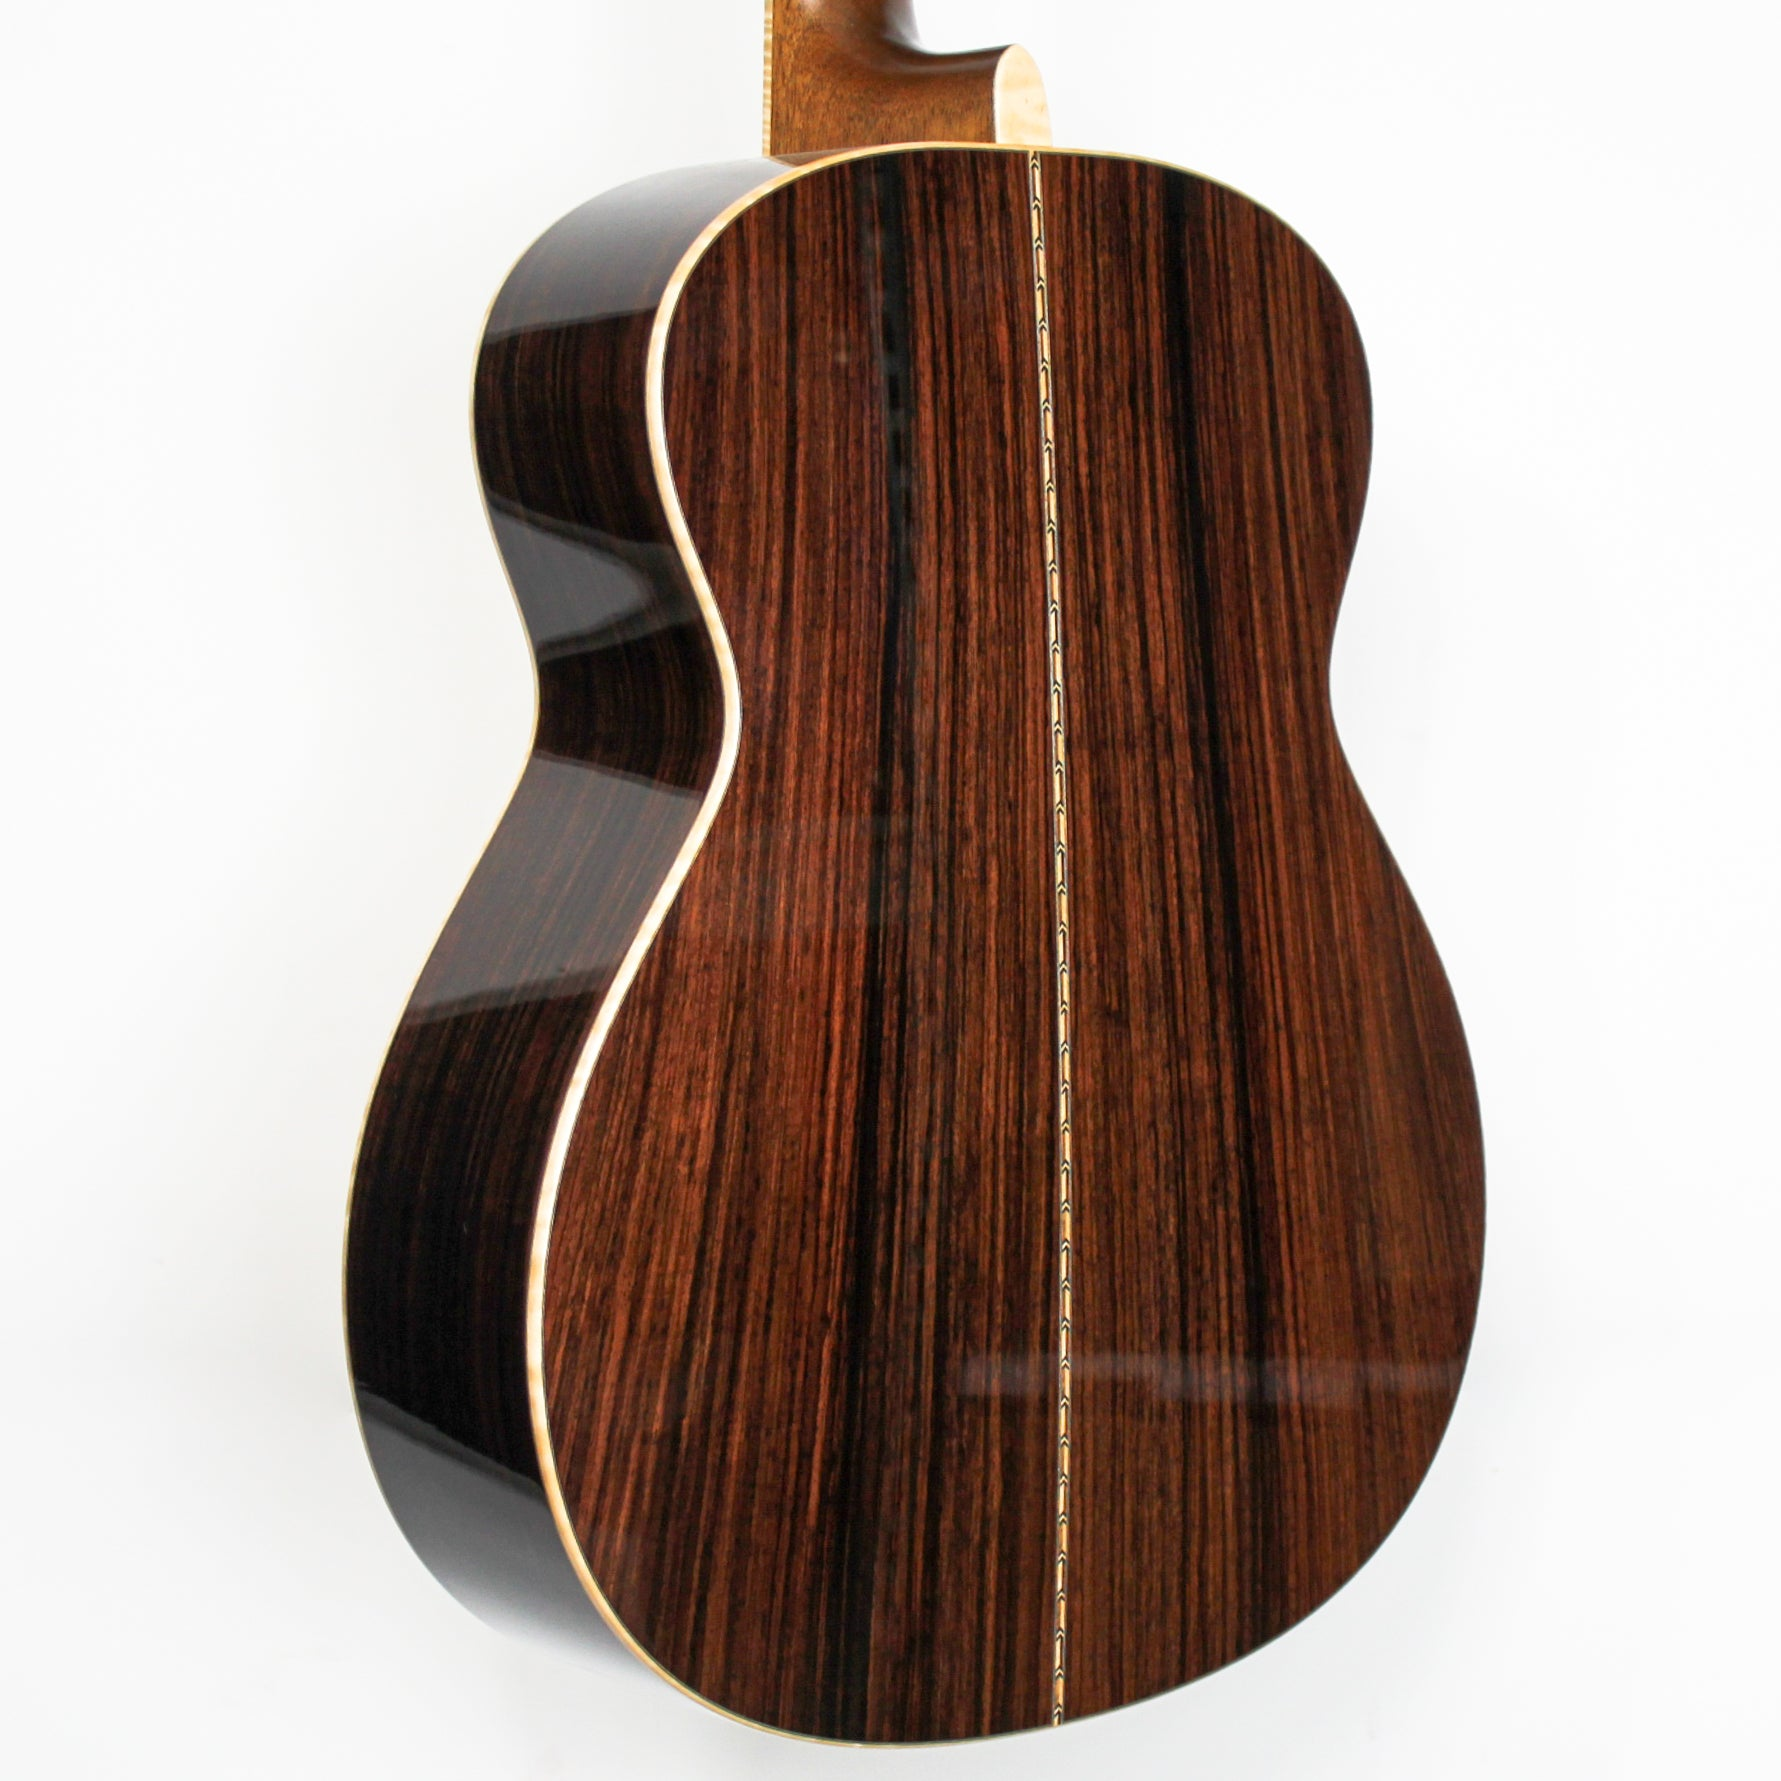 Goodall AAA Grand Concert 14-fret, German spruce, E.I. Rosewood